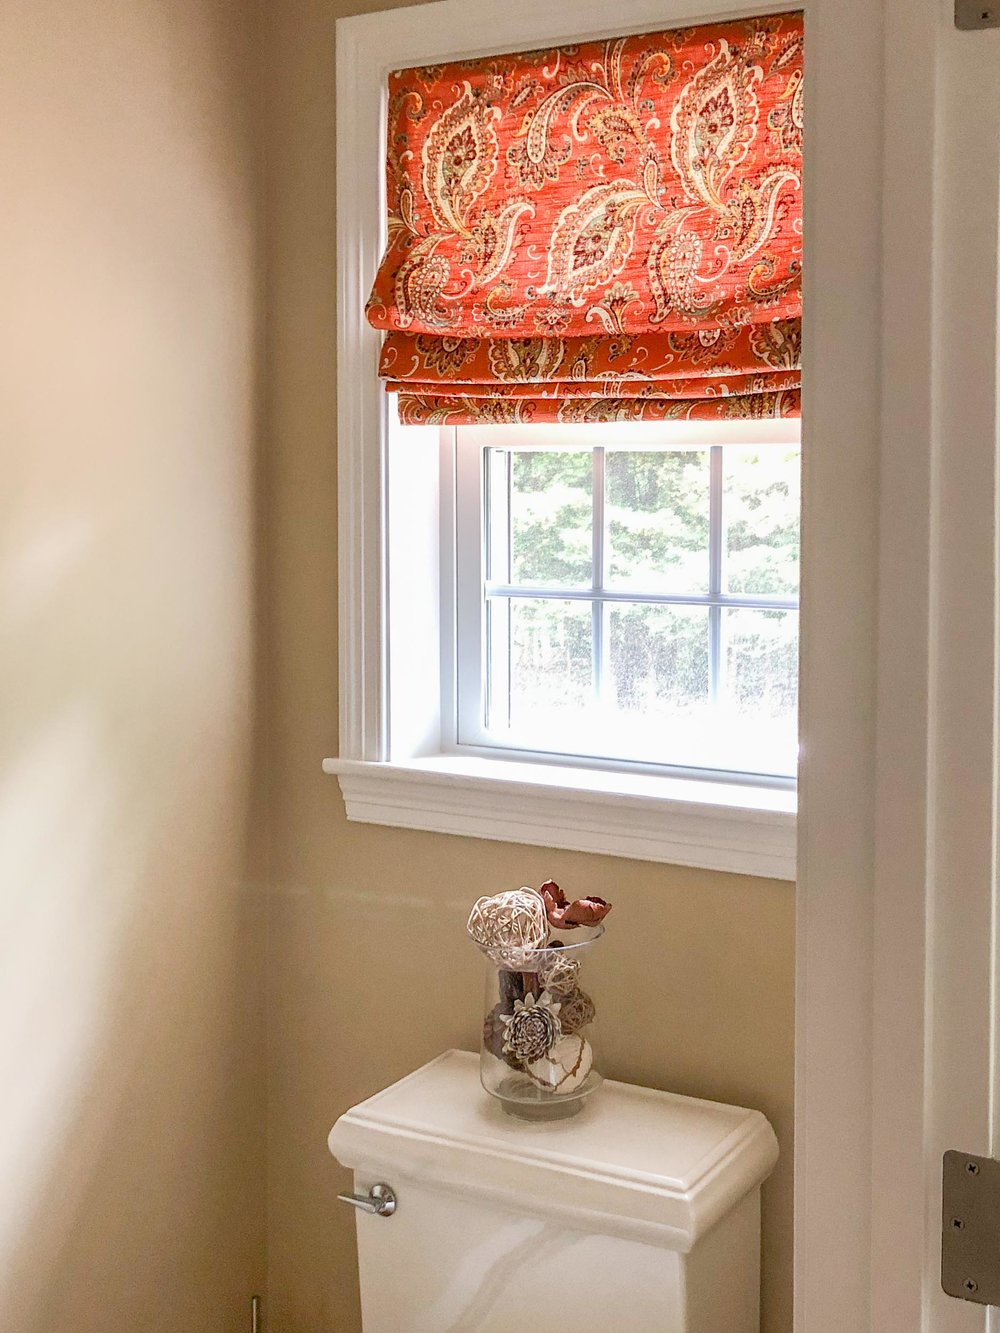 A small powder room was designed for the space.